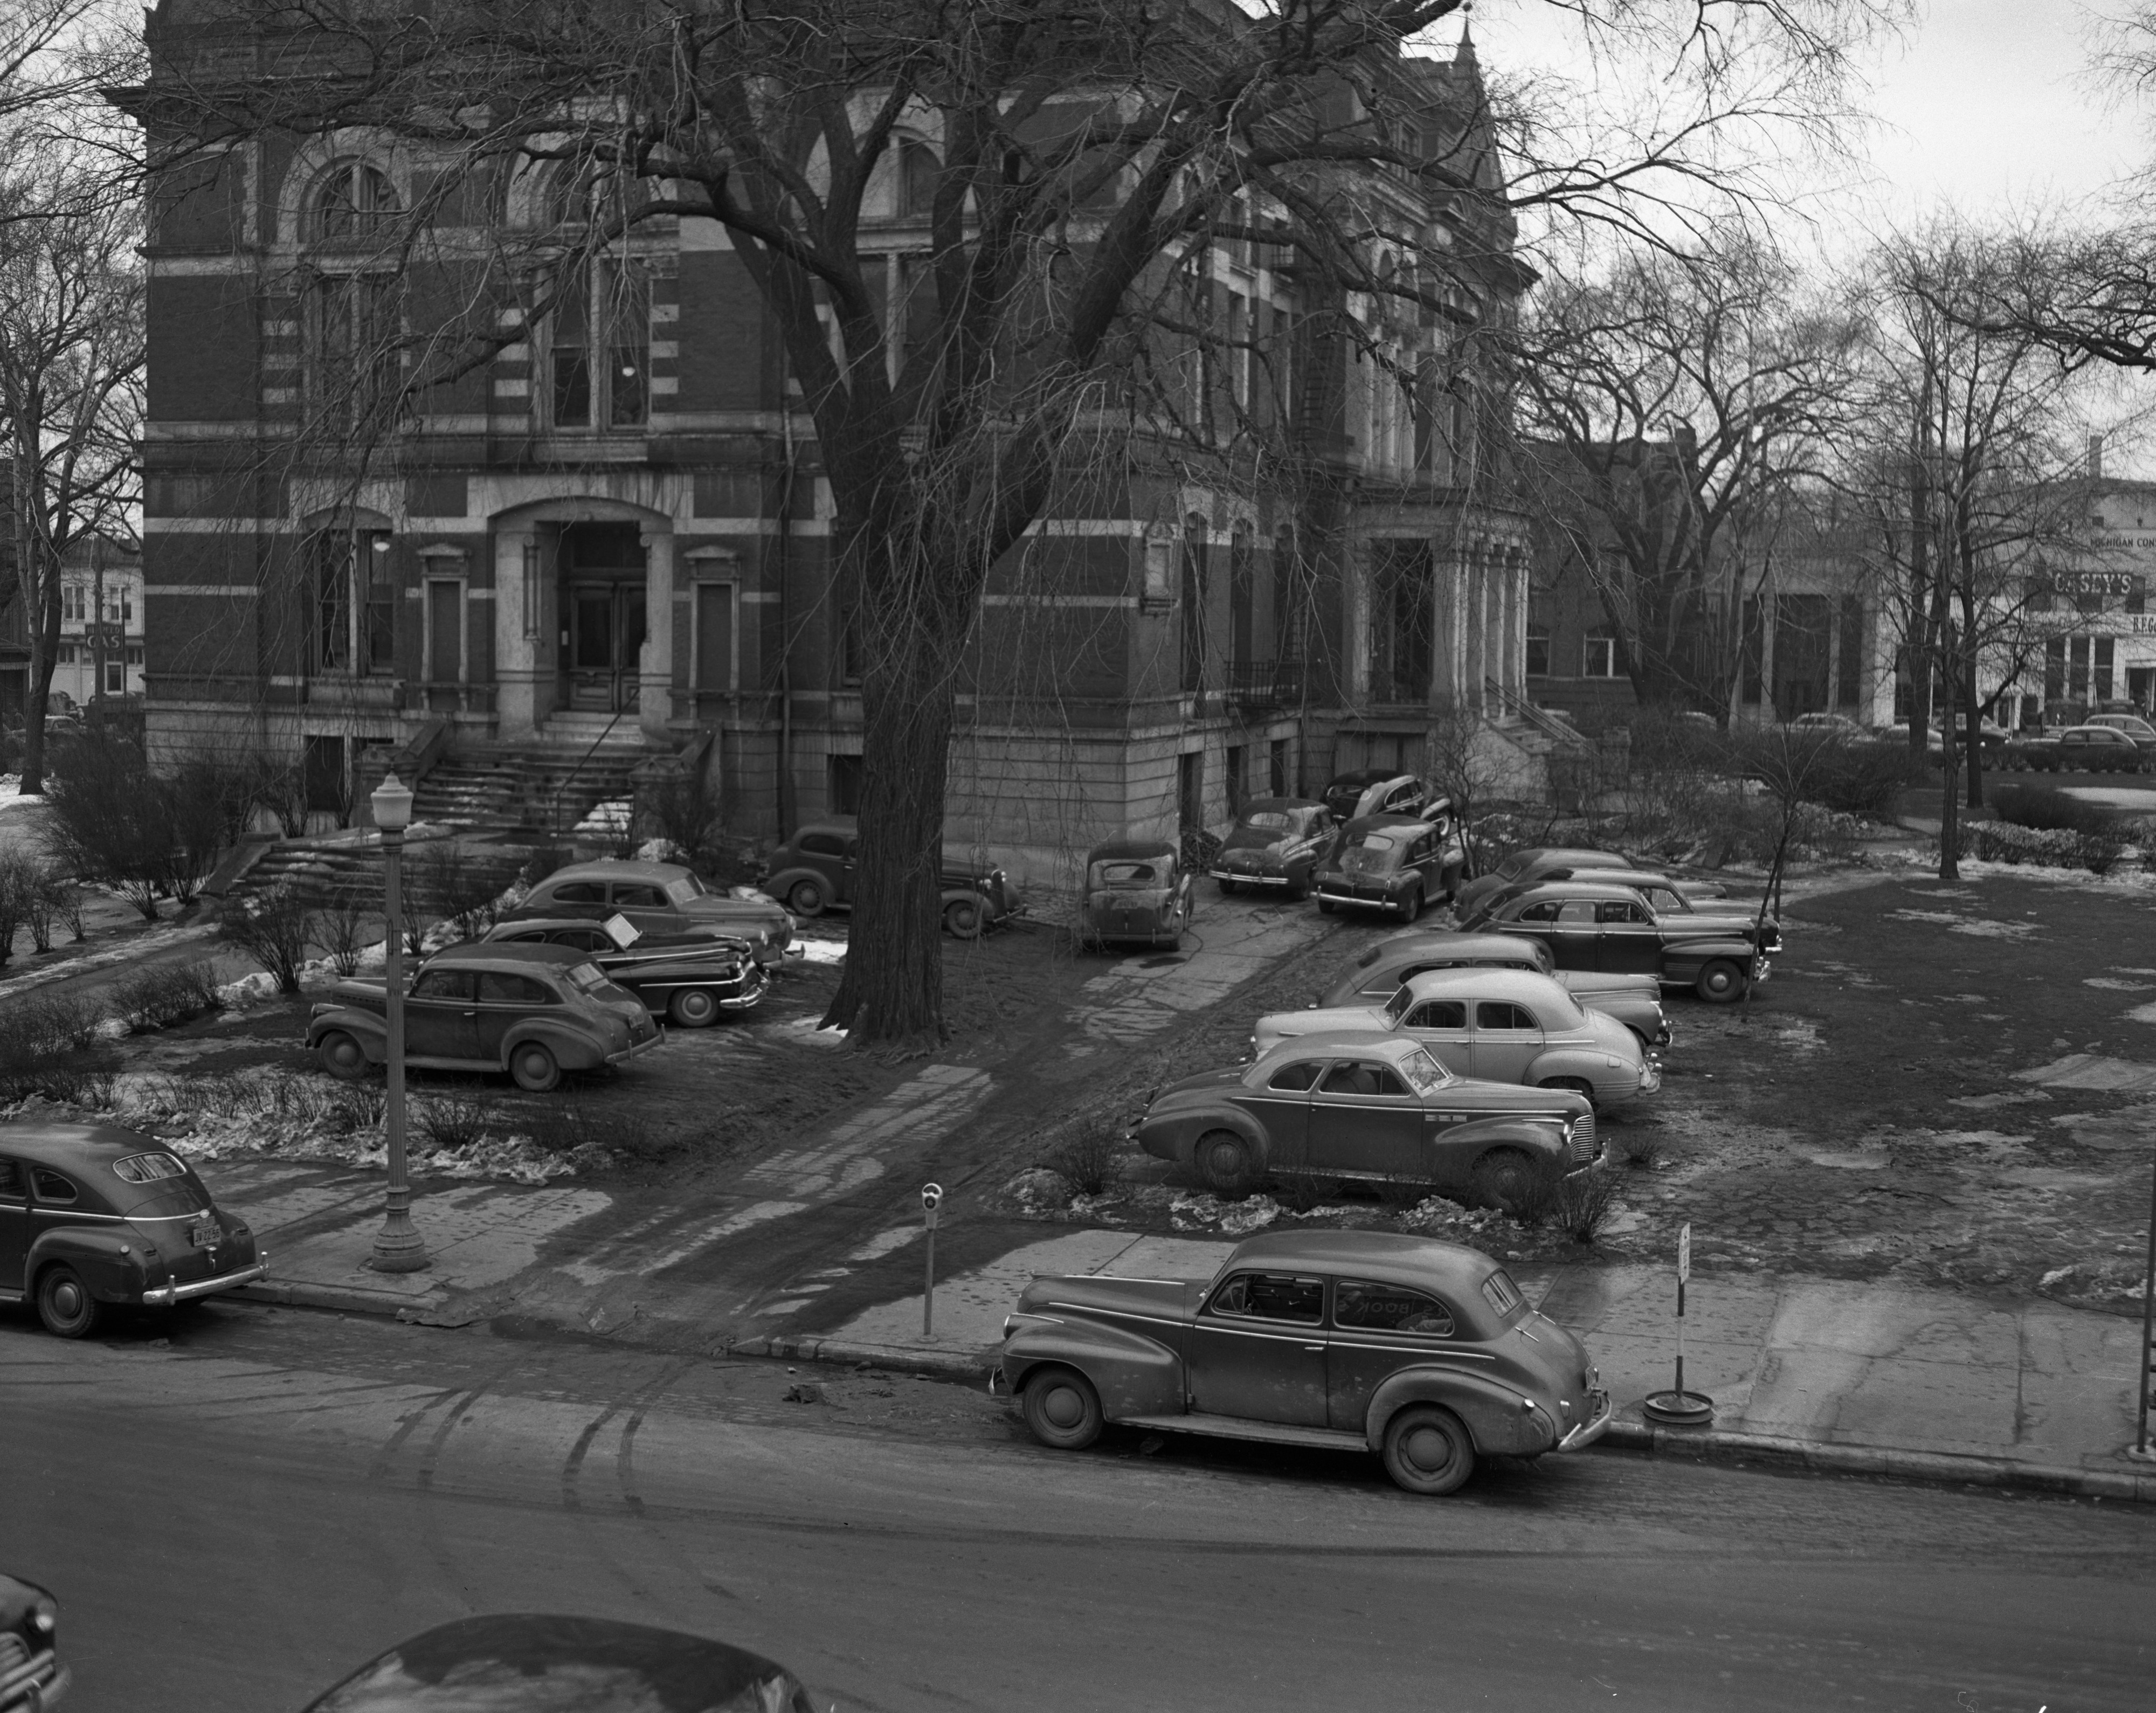 Parking at the Court House, March 1947 image